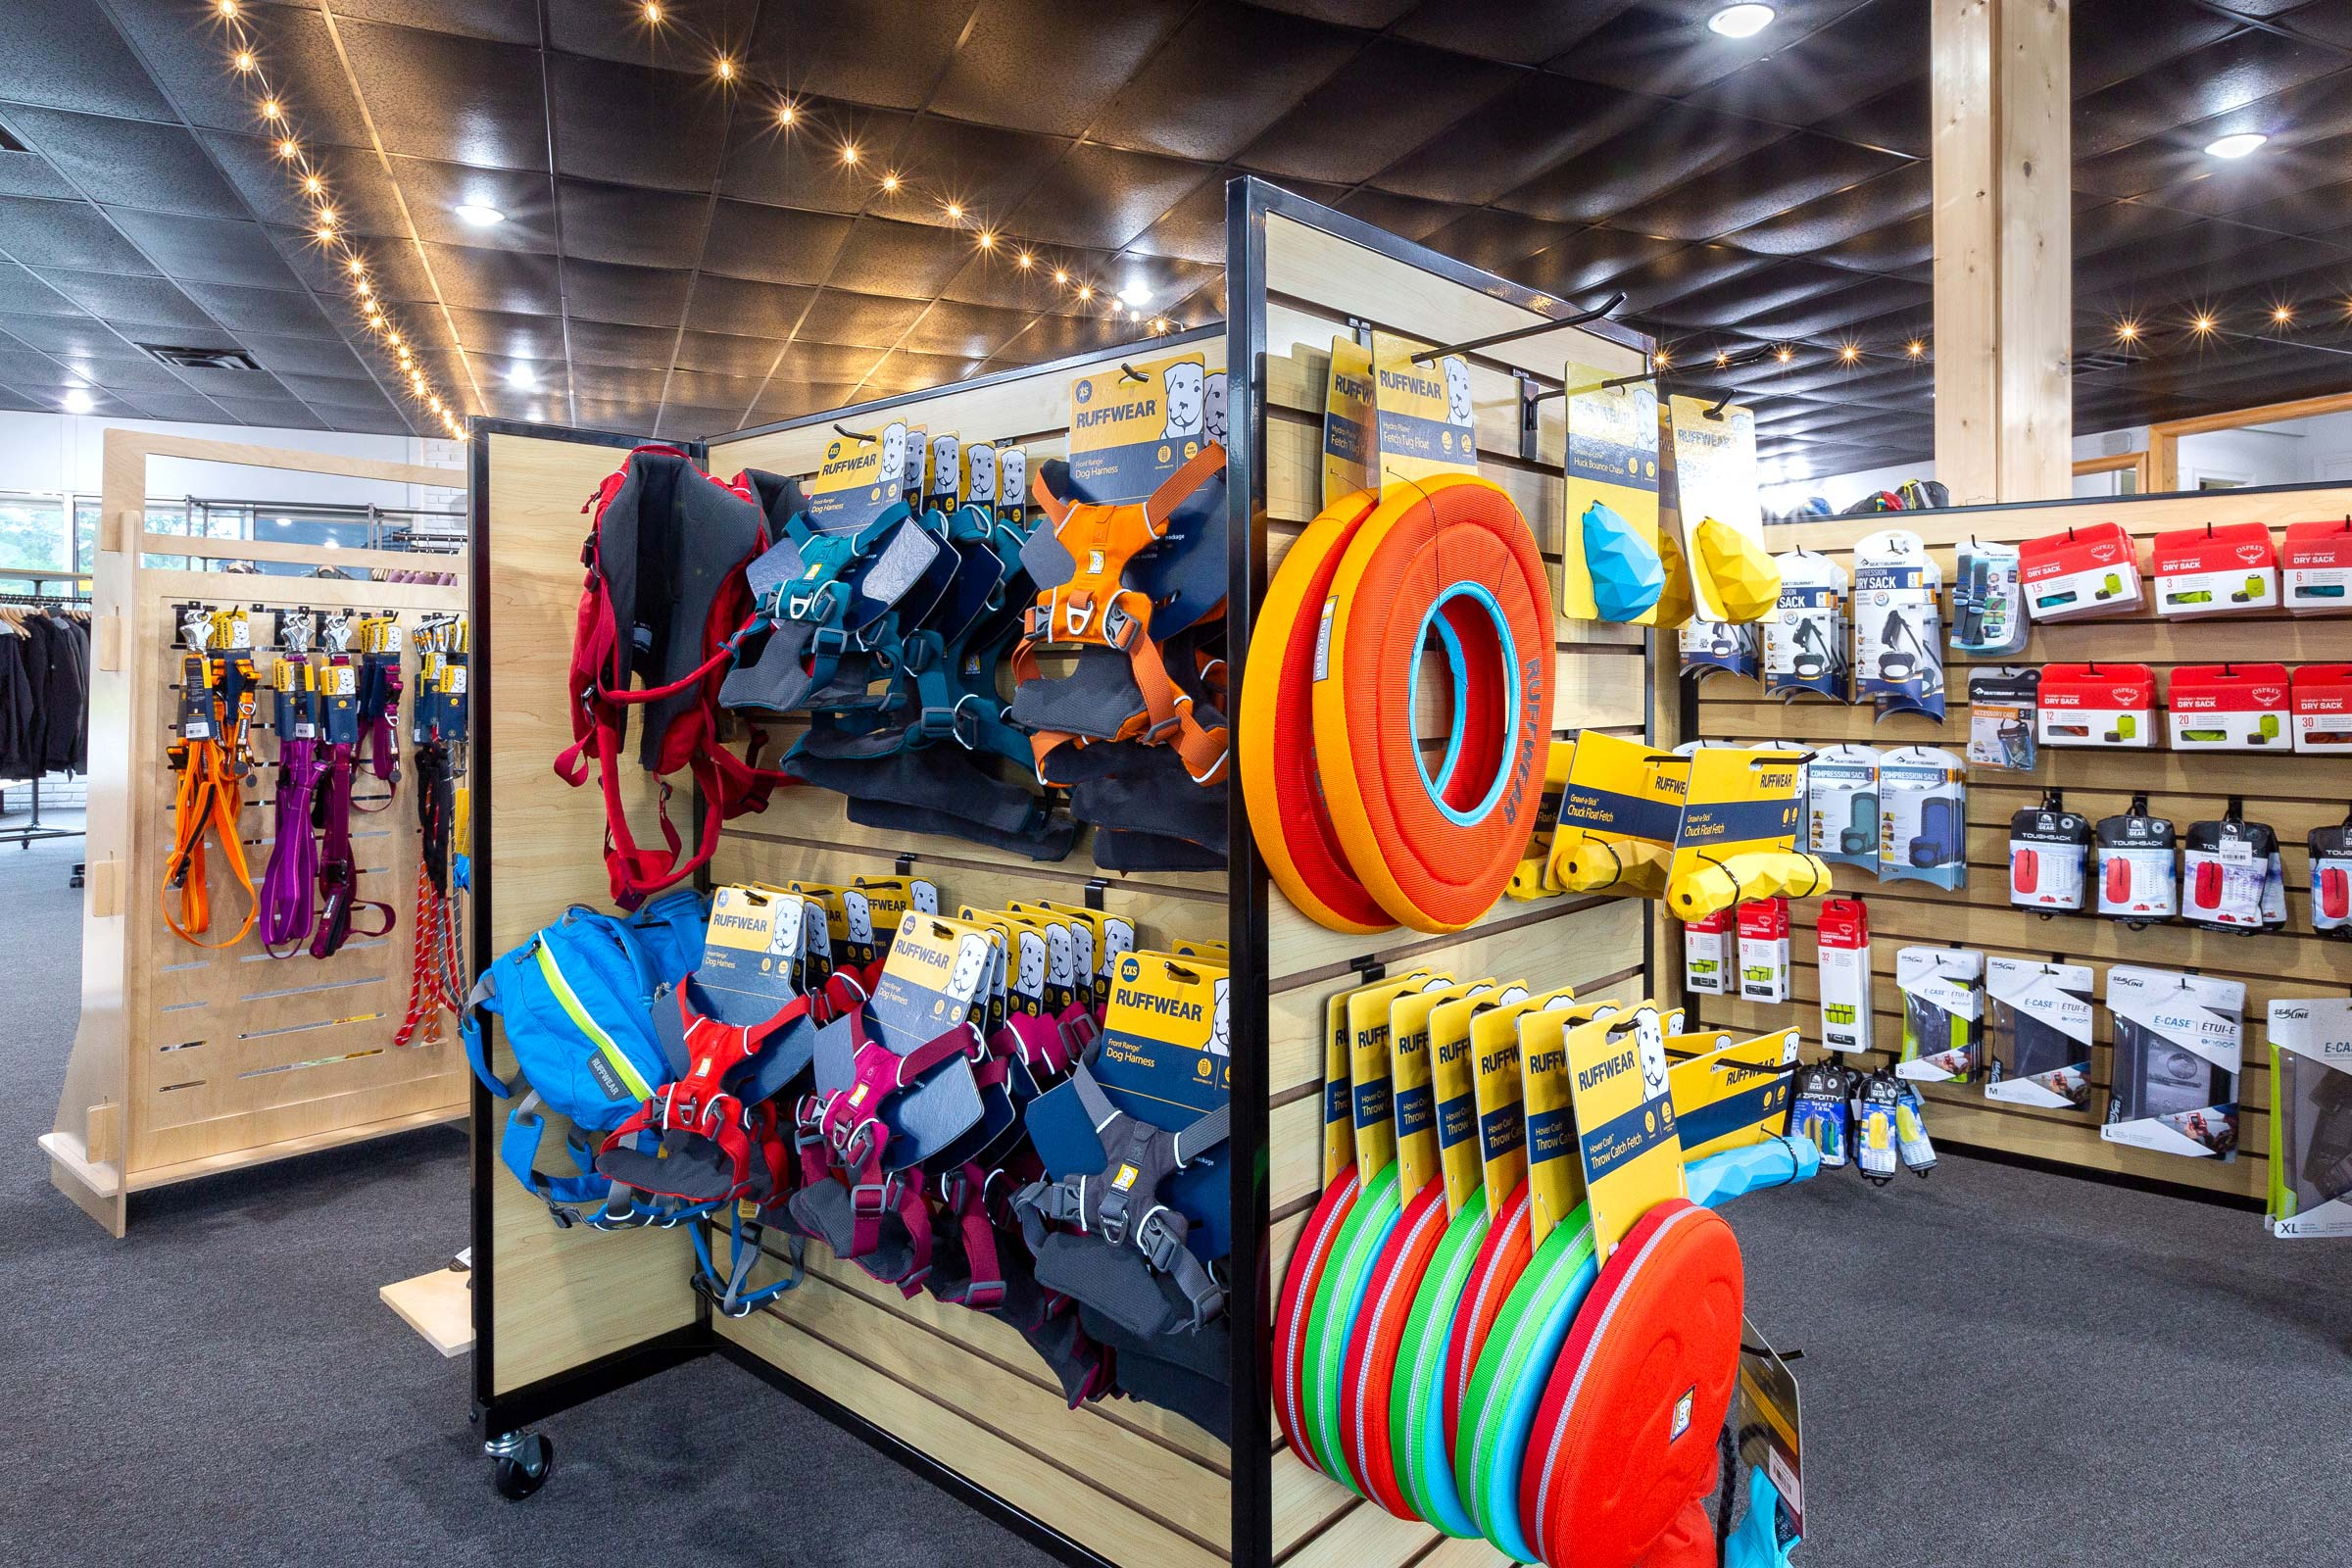 Trailful Outdoor Co stocks a selection of Ruffwear dog hiking gear, and the shop is dog-friendly for leashed dogs, too